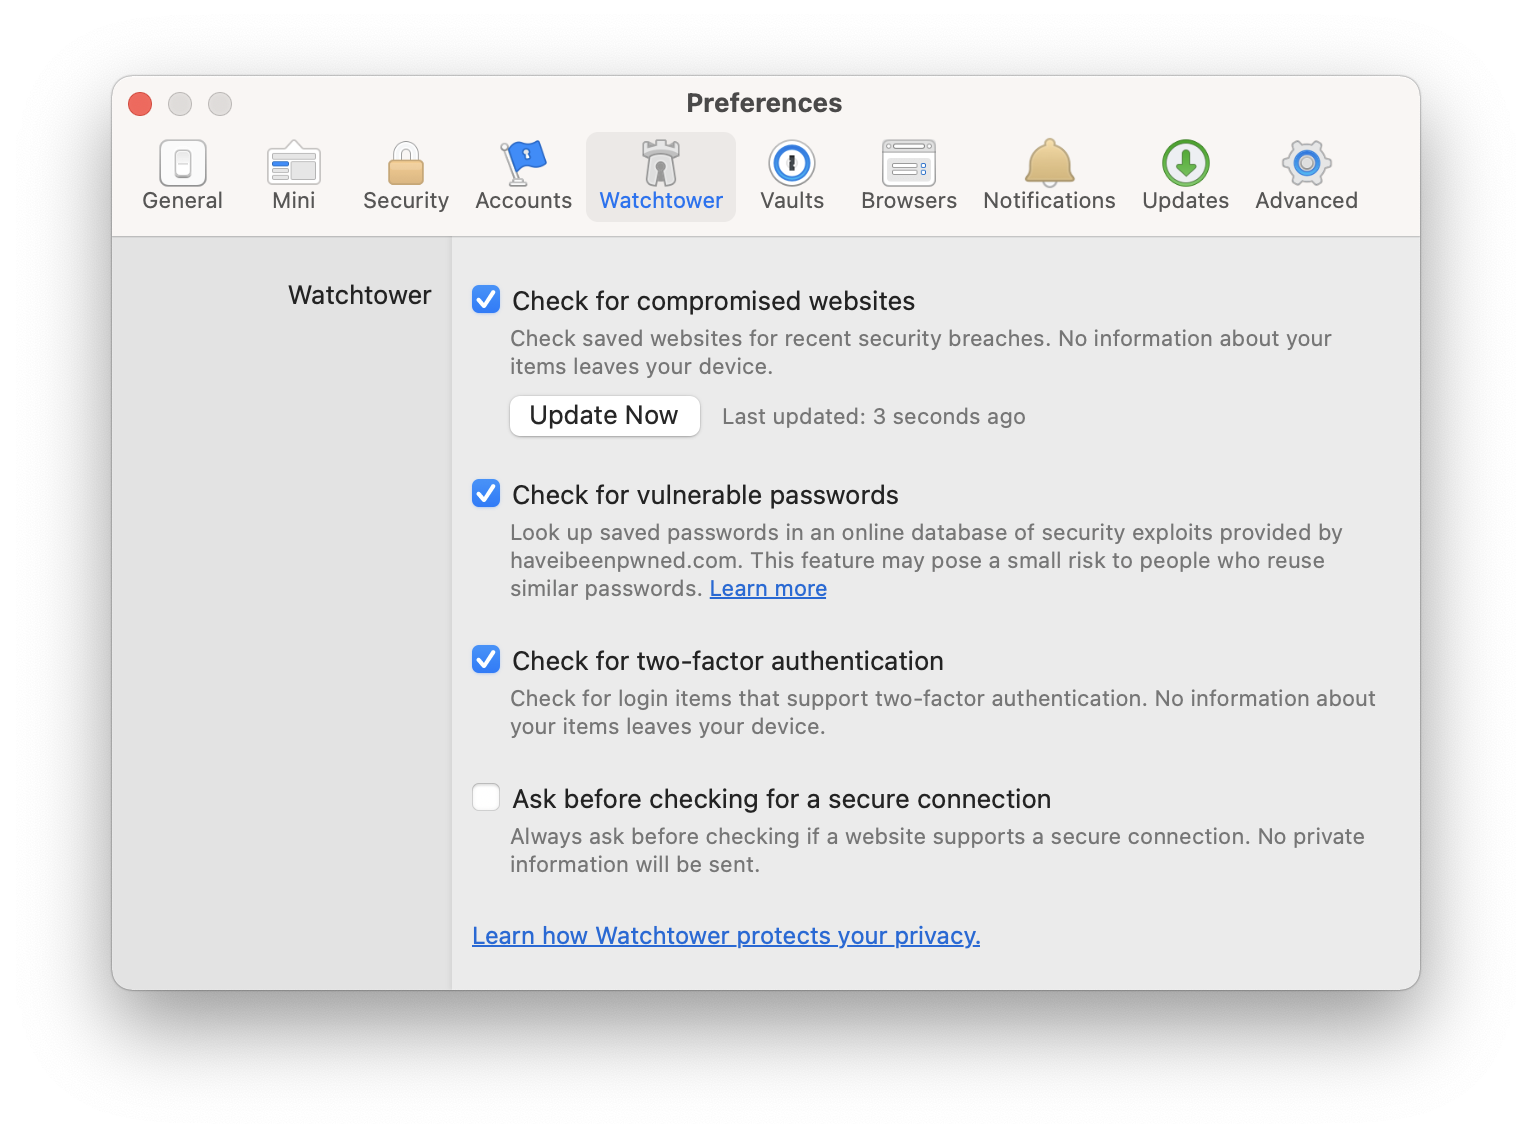 Screenshot of the Watchtower preferences with first three items checked.